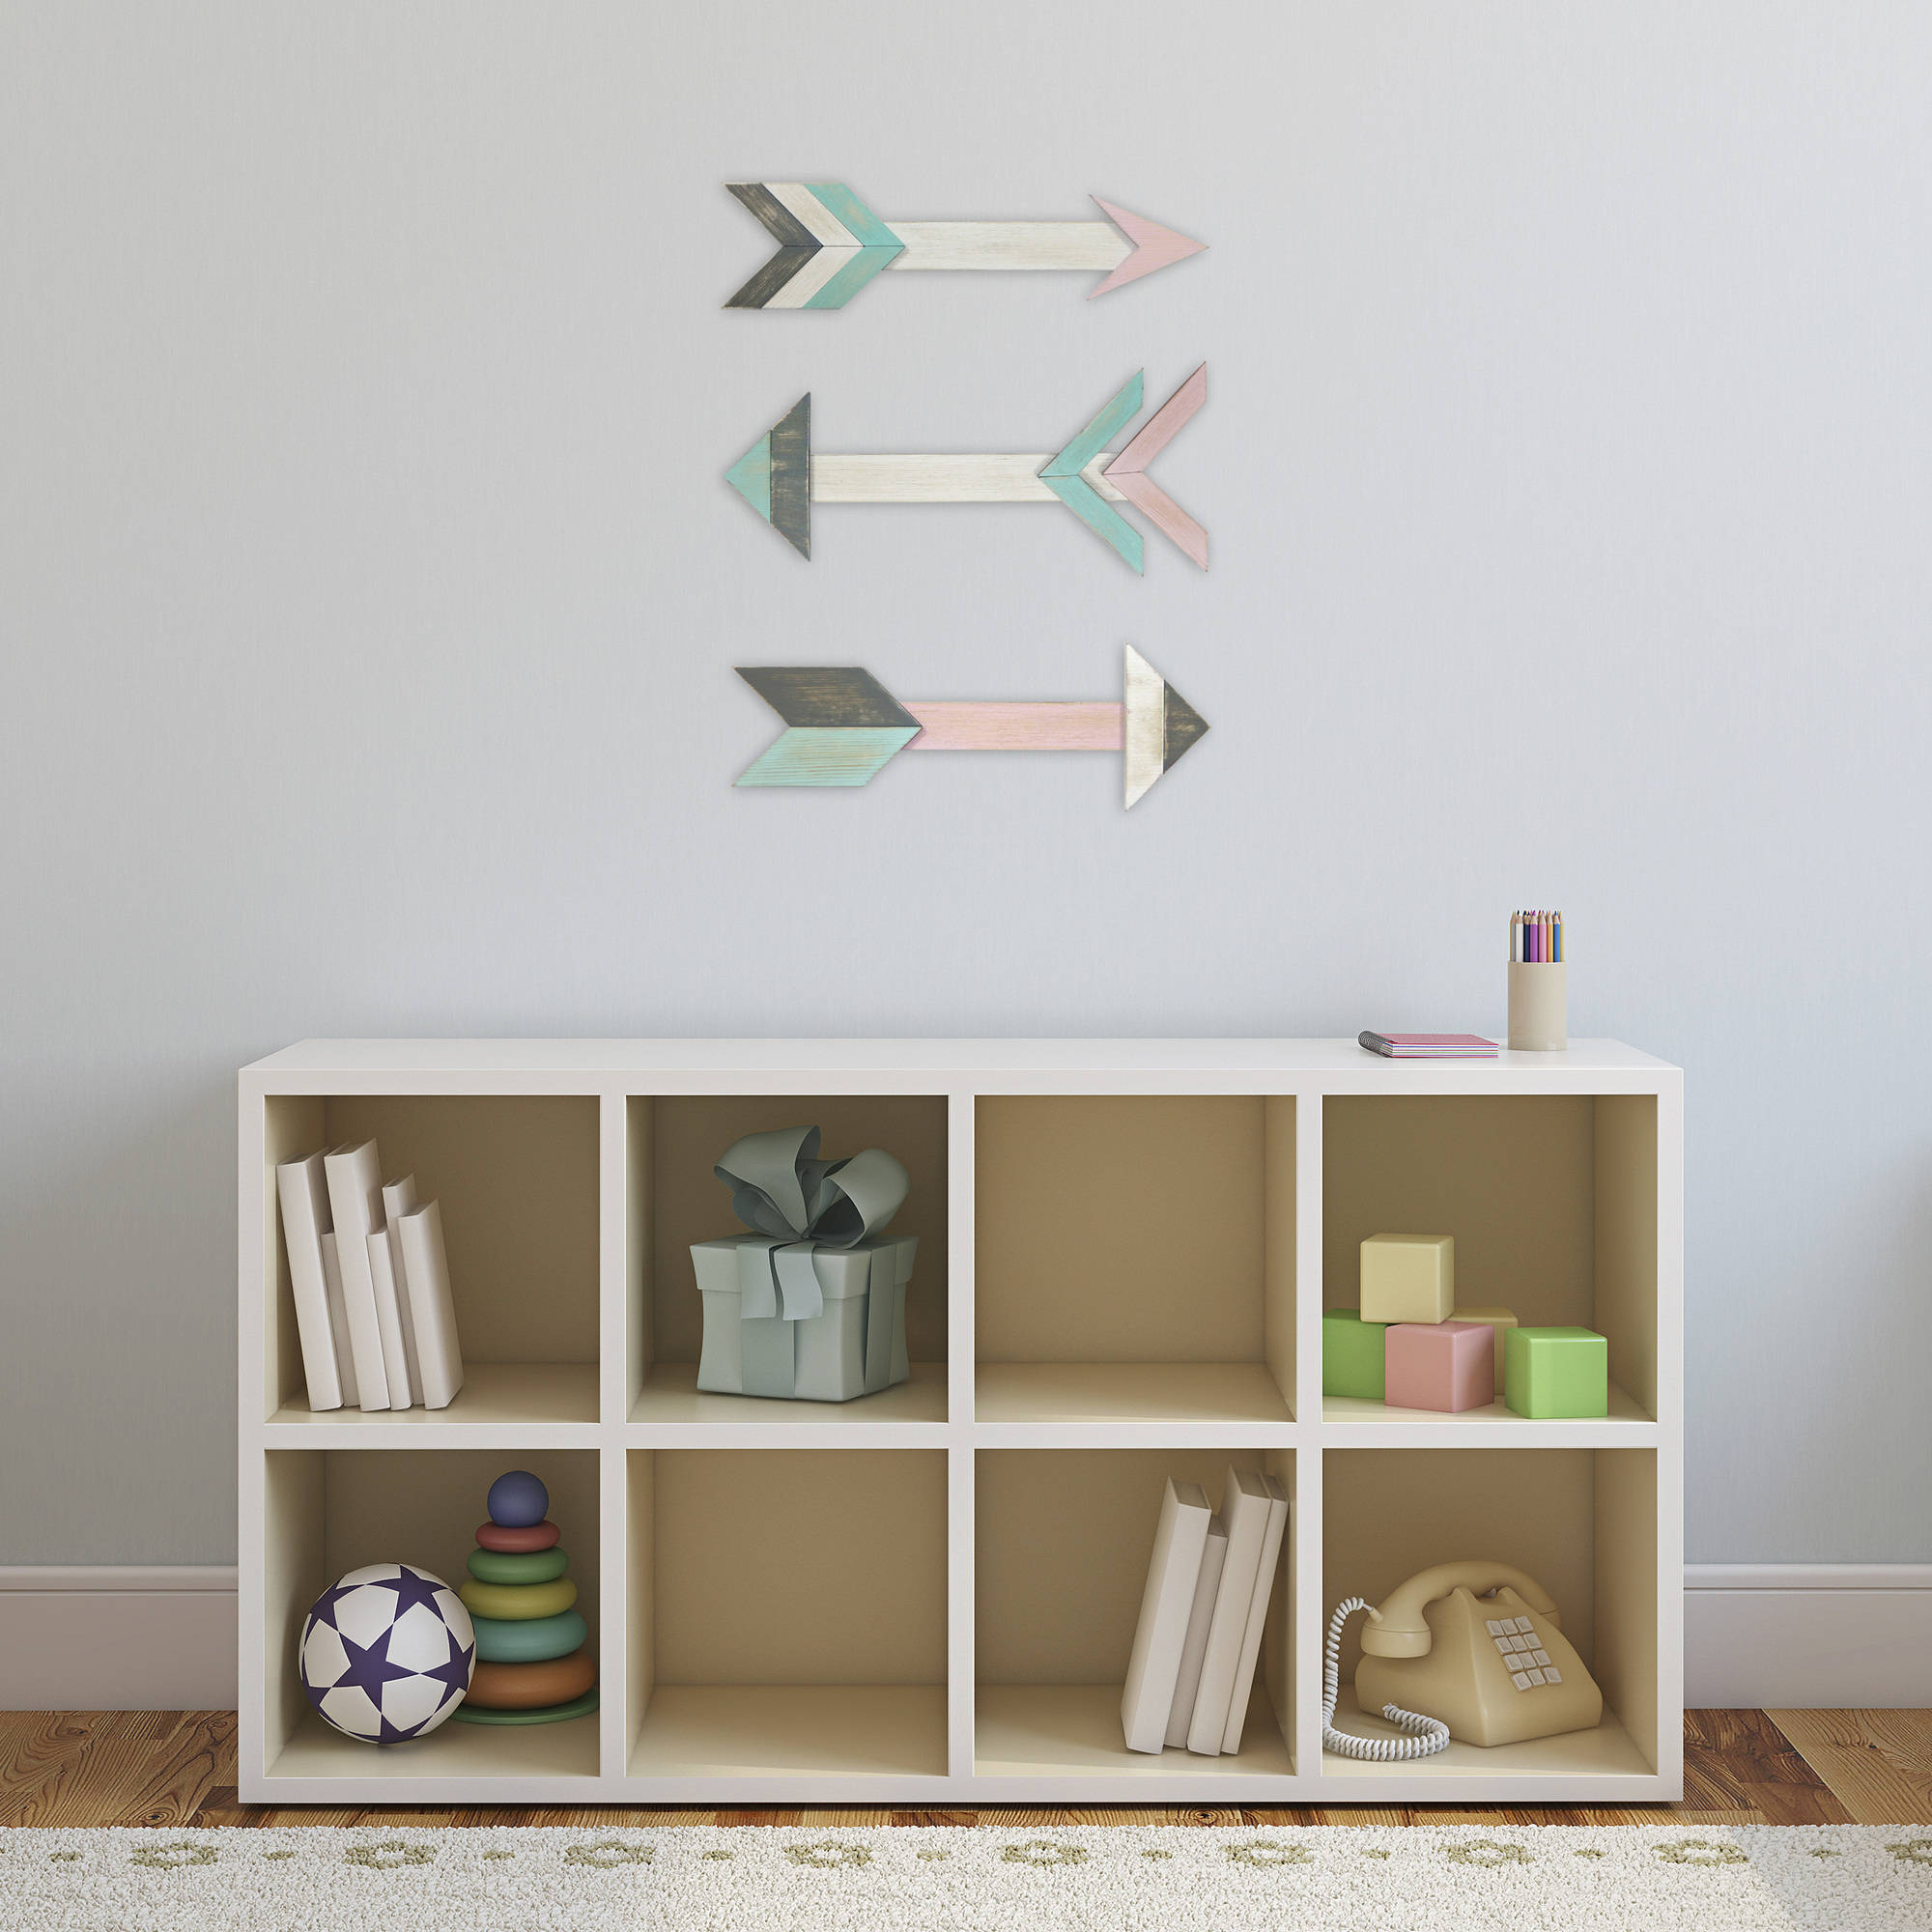 Better Homes and Gardens 3-Piece Wooden Arrow Wall Art Set, Pink and Aqua